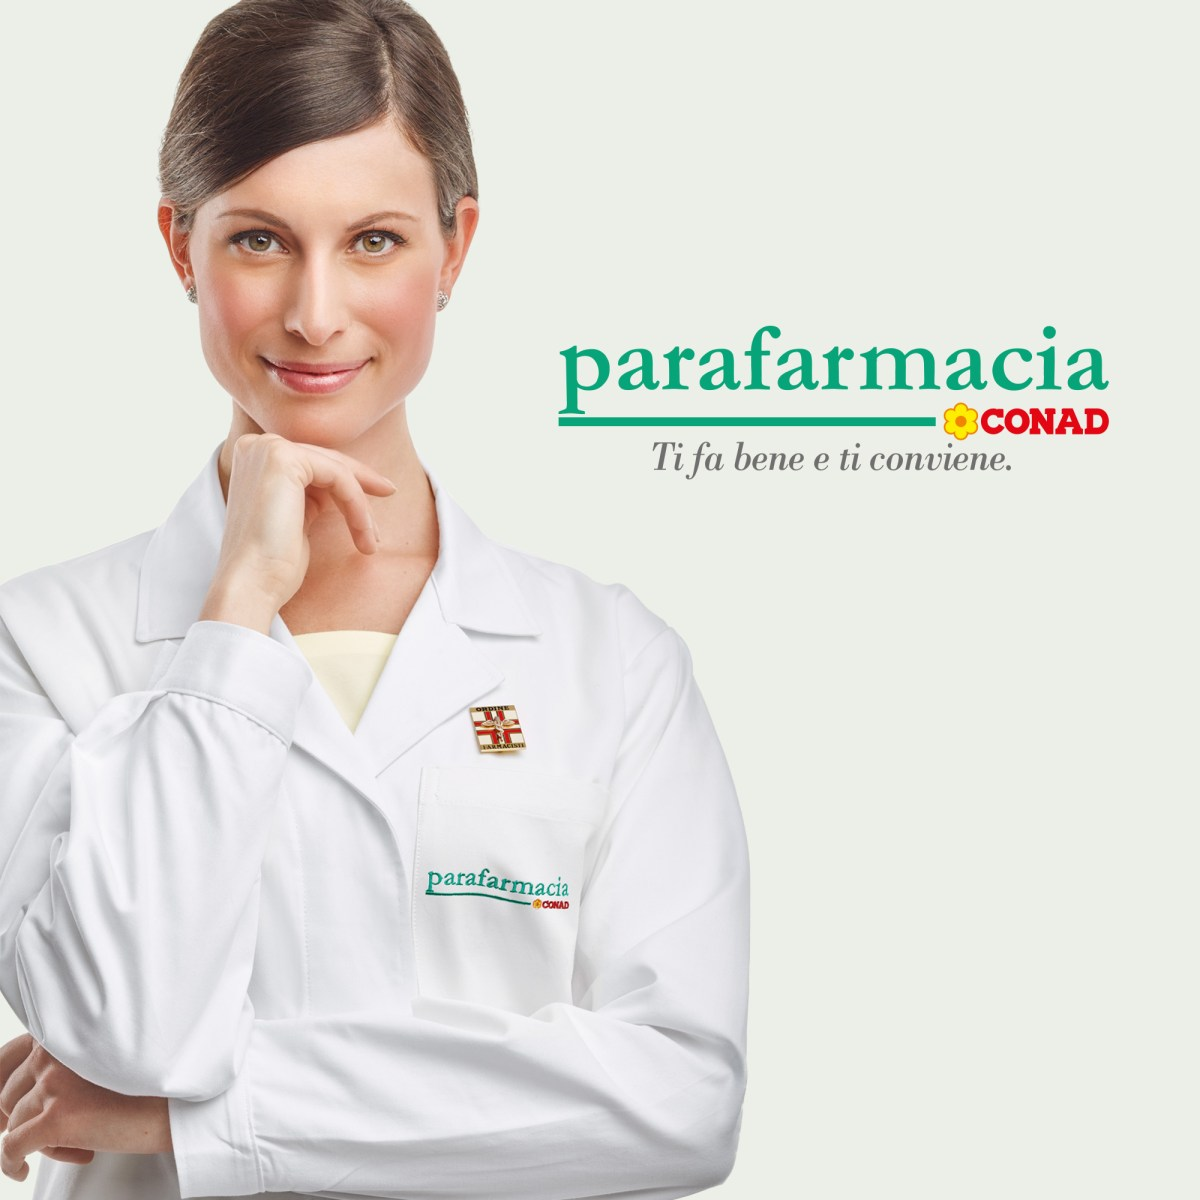 parafarmacia home Sintesi/HUB agenzia marketing Trieste